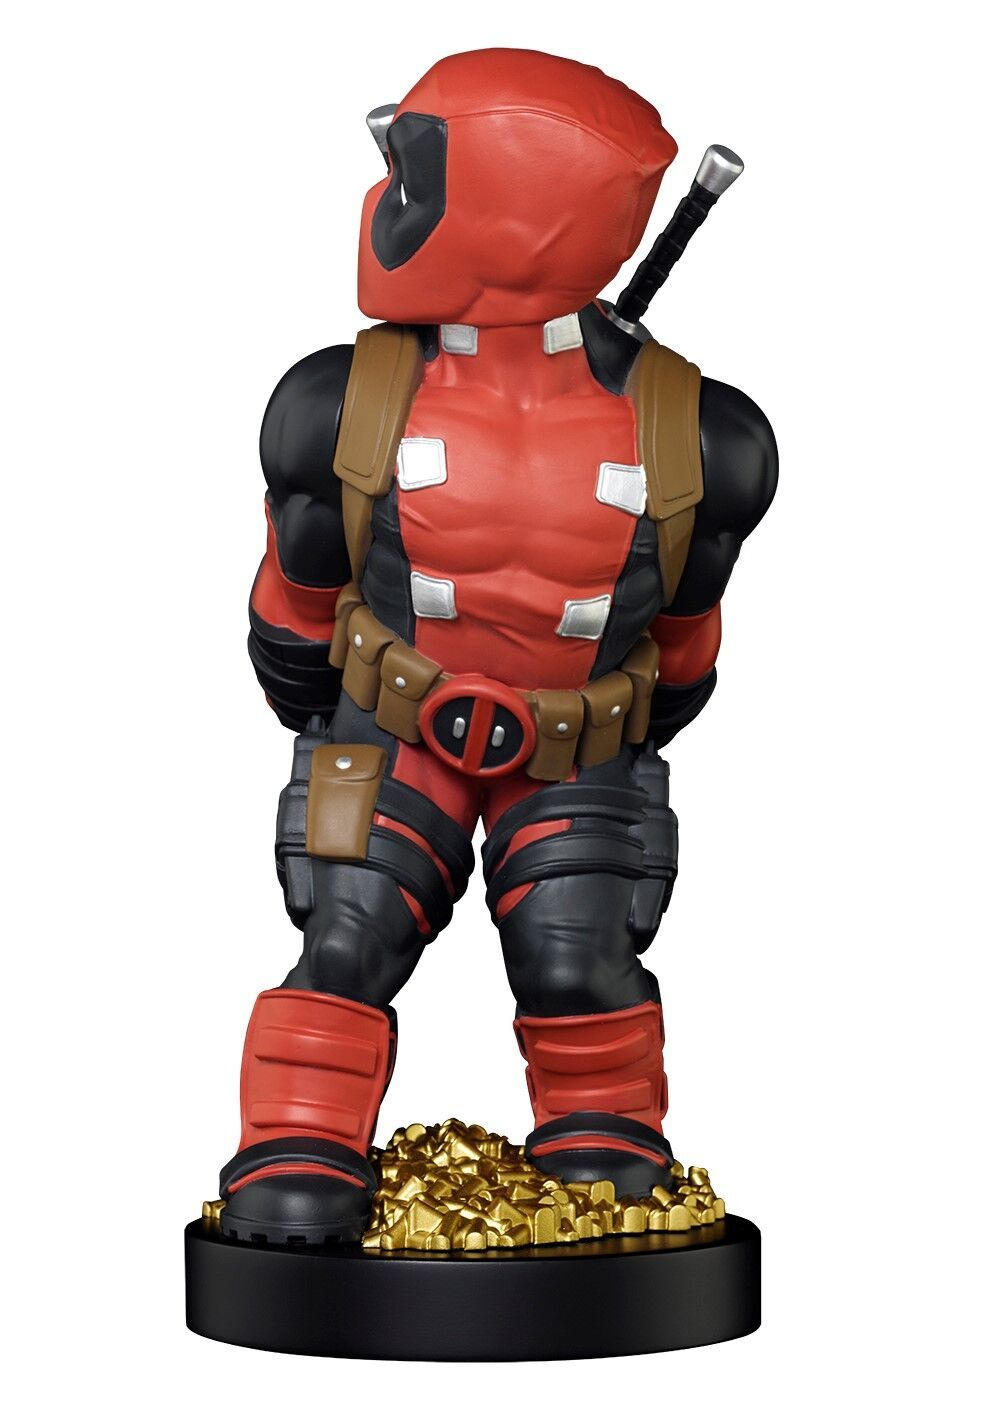 Cable Guy Controller Holder - Deadpool New Legs Version - PS4